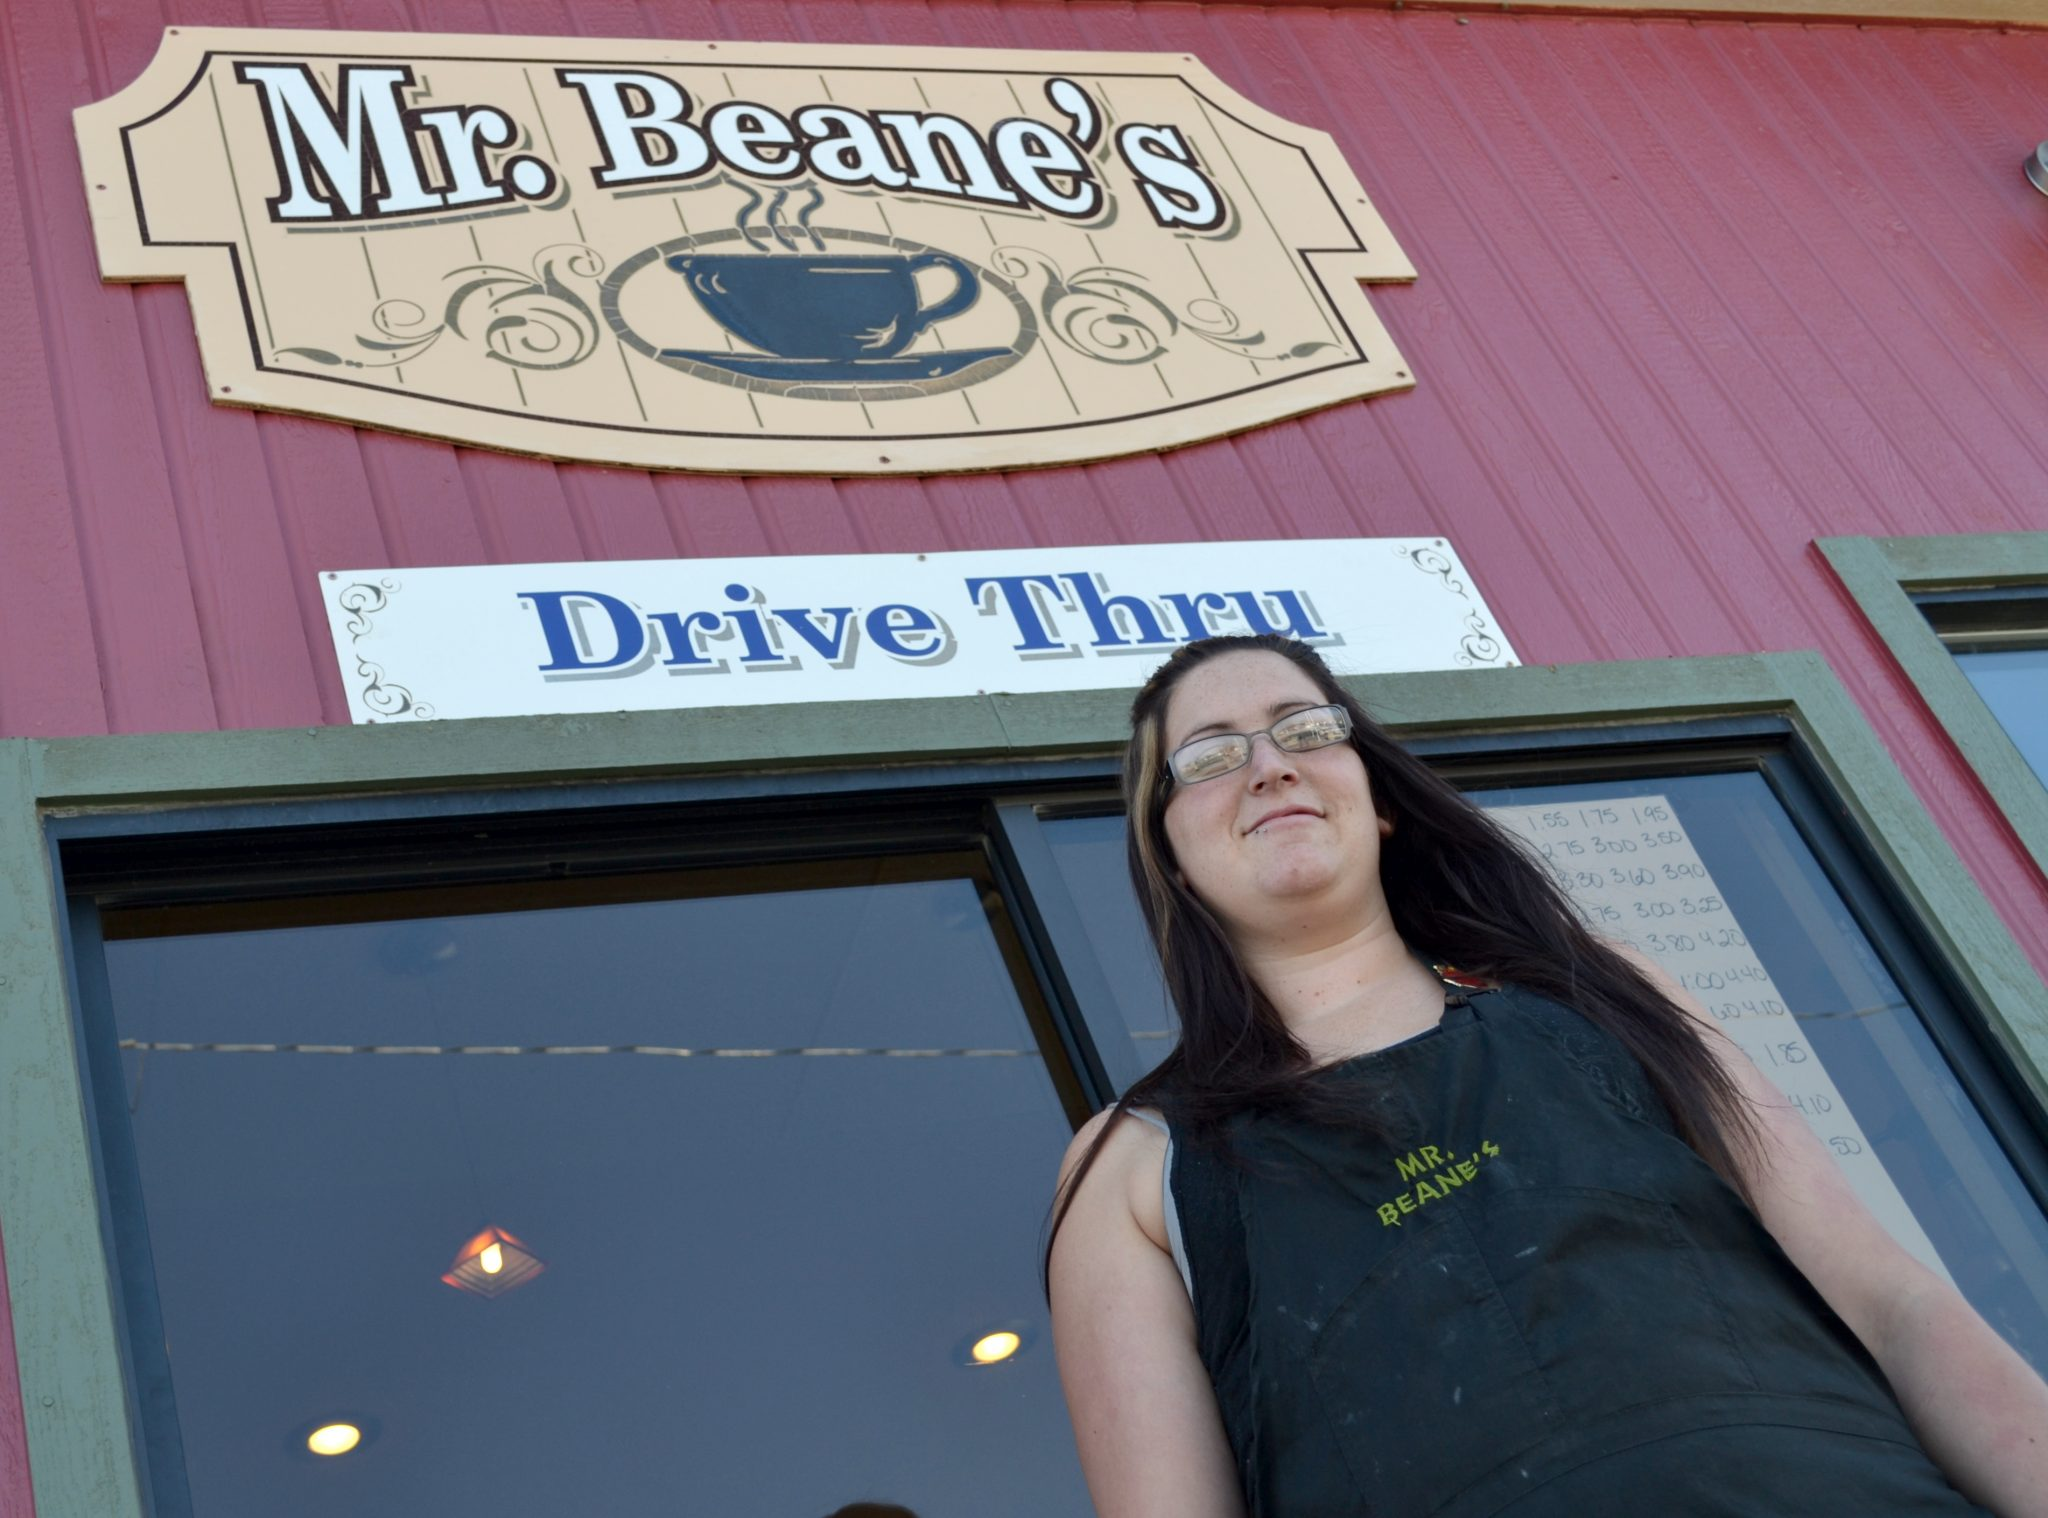 Mr. Beane's reopens under new operator